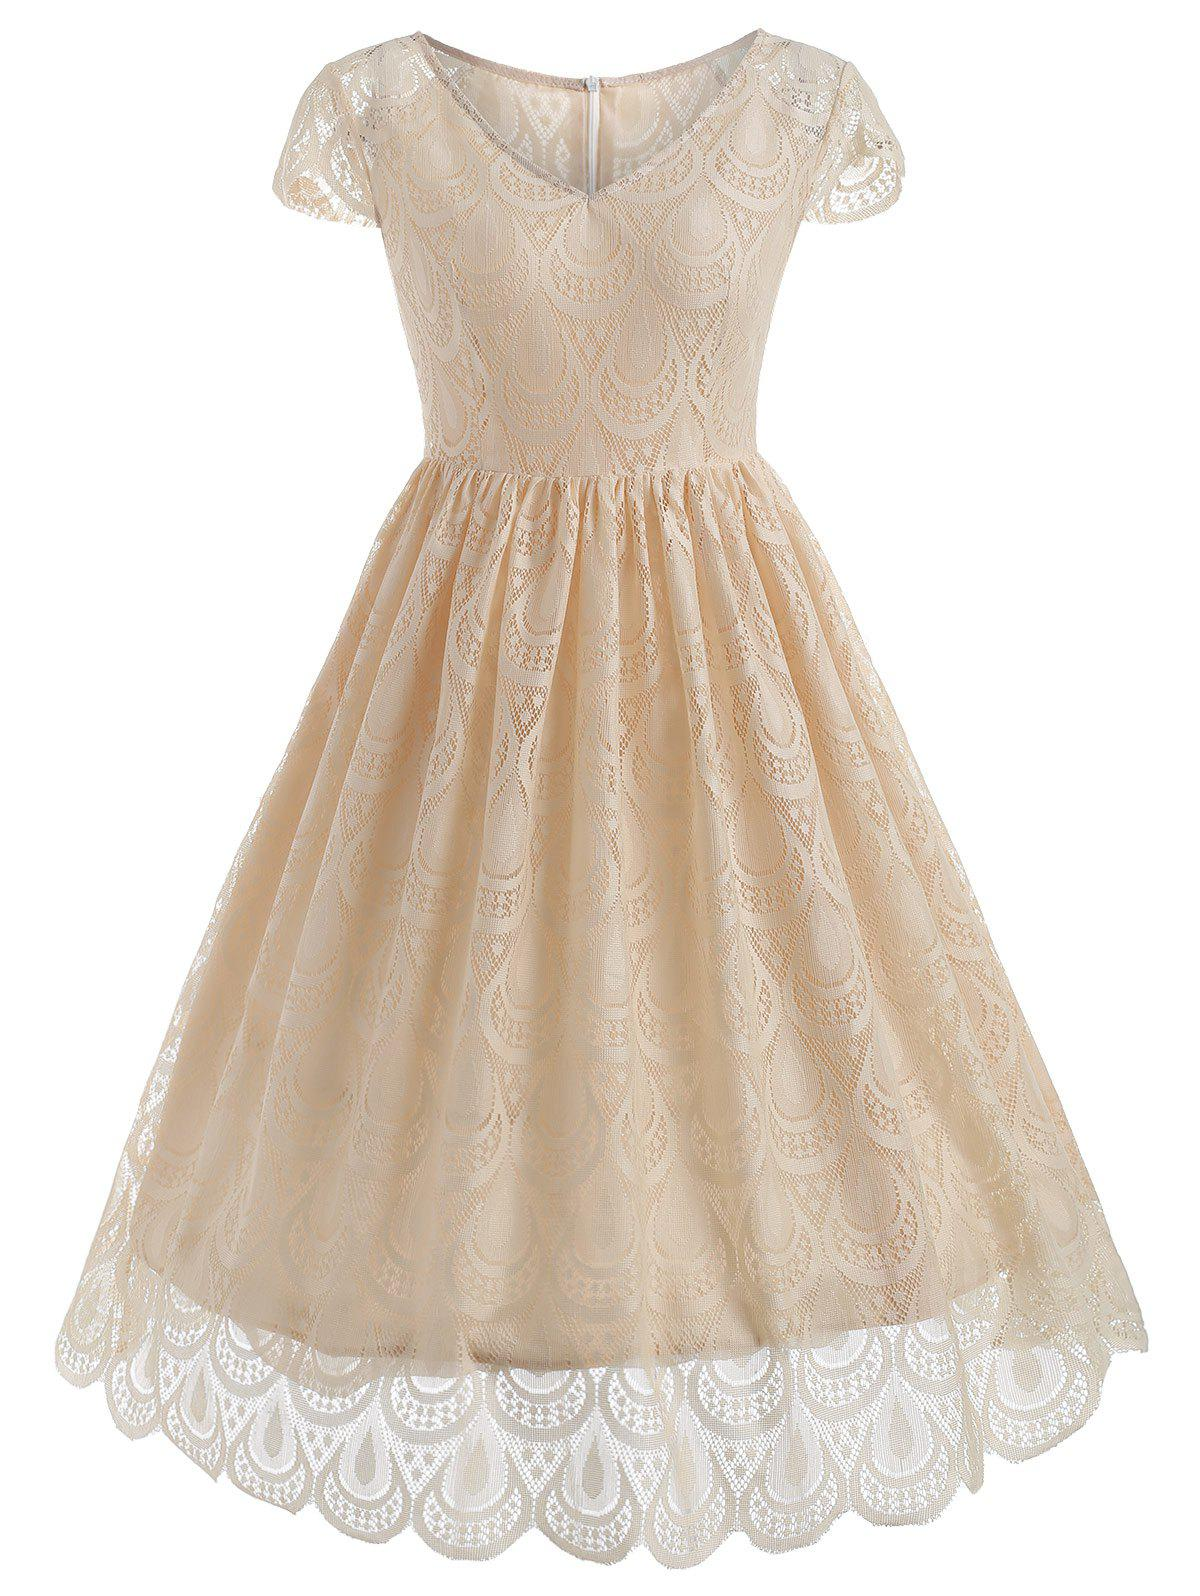 Scalloped Sleeve Lace Swing Dress - CORNSILK 2XL